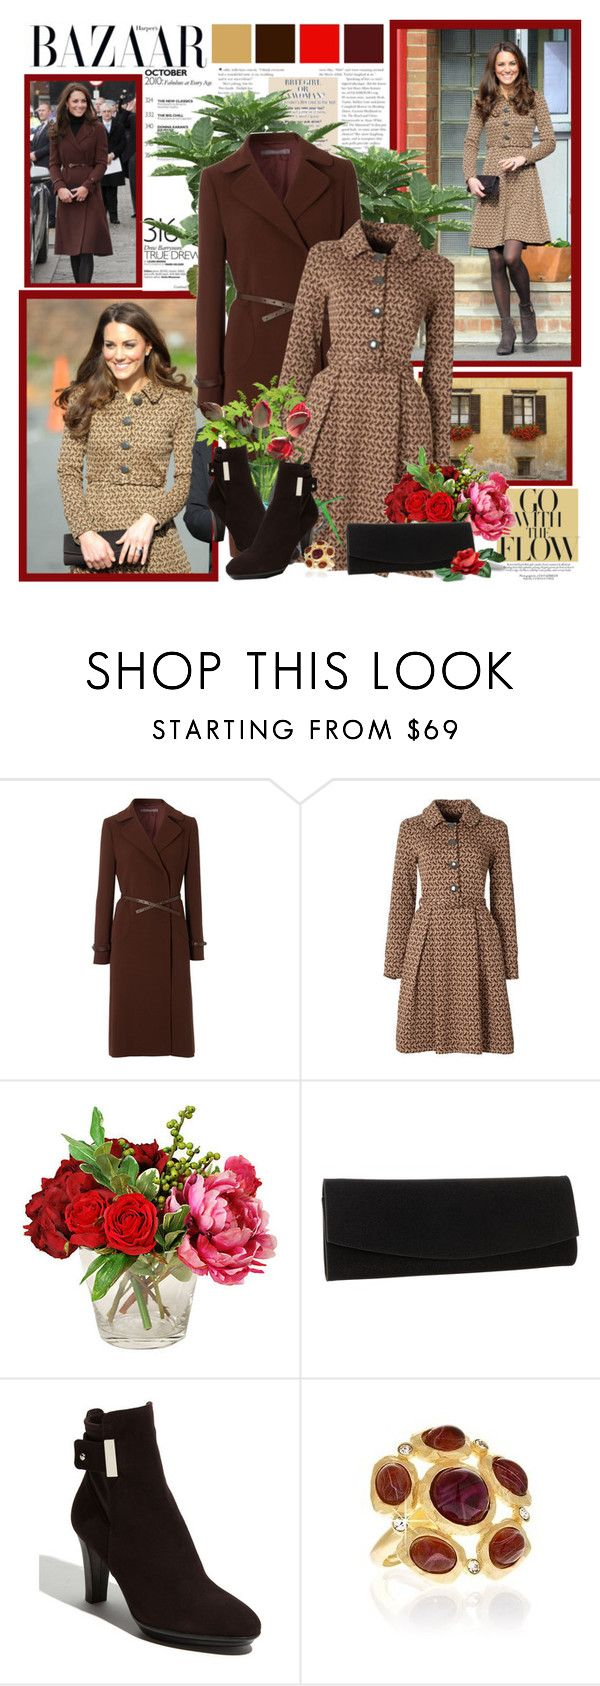 """Go with the flow - Kate Middleton"" by helleka ❤ liked on Polyvore featuring Orla Kiely, Hobbs, Stuart Weitzman, Aquatalia by Marvin K., Kenneth Jay Lane, shirt dresses, suede ankle boots, cocktail rings, clutches and kate middletin"